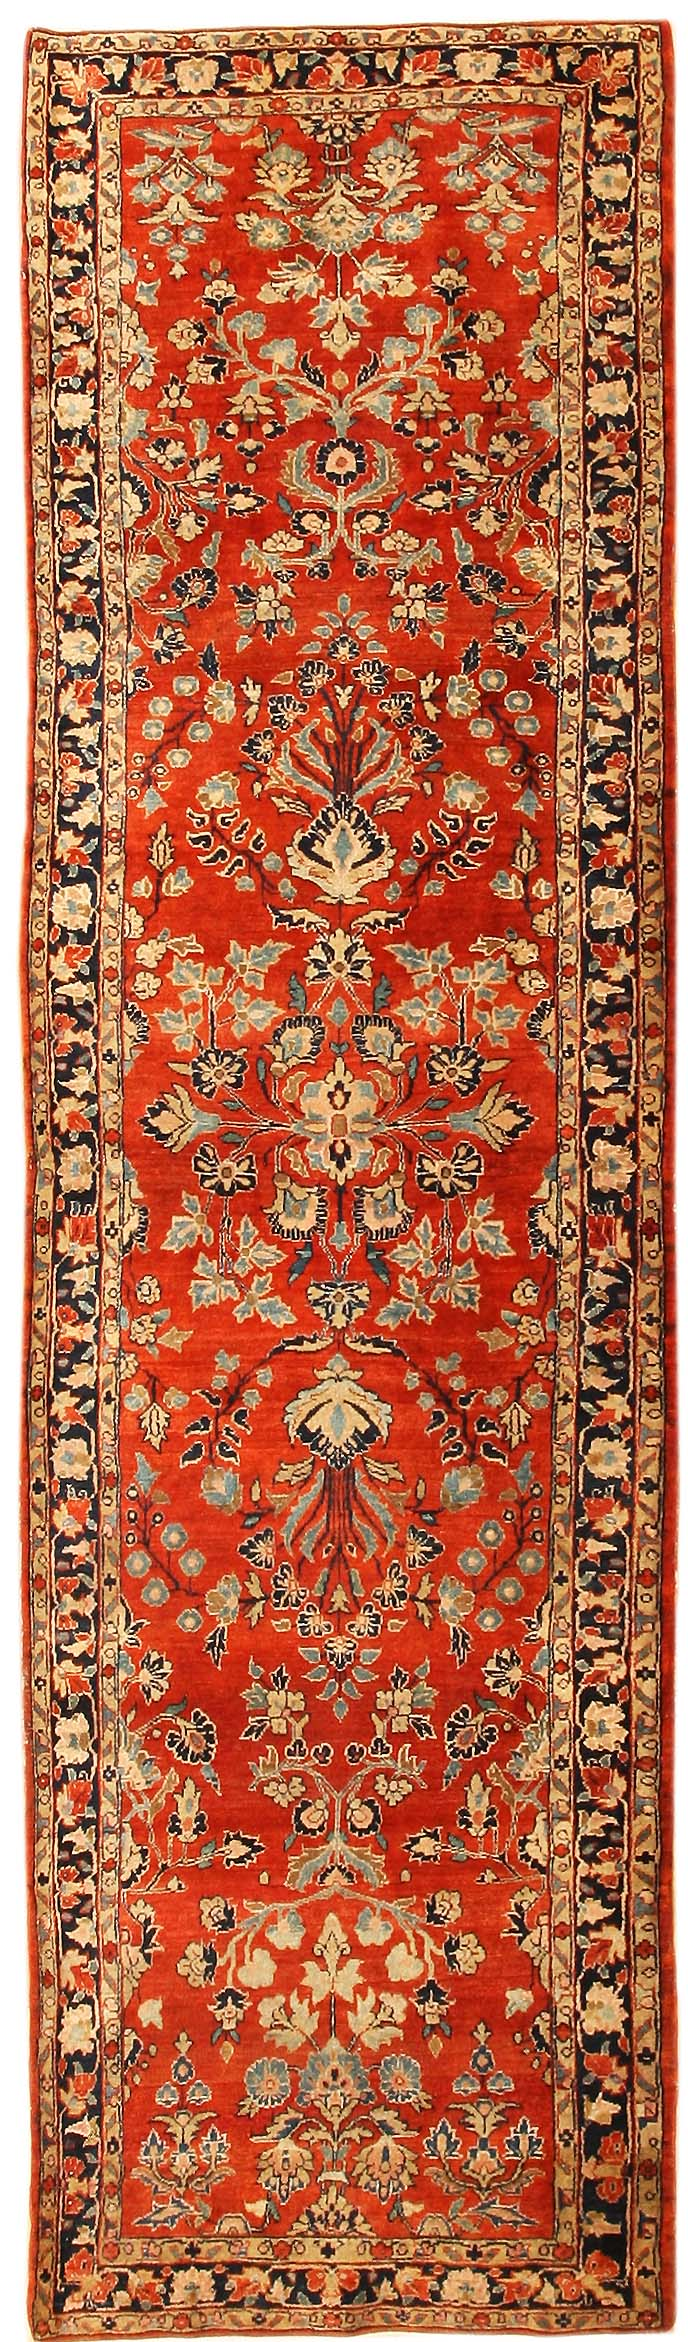 Interior Nice Spectacular Red Rug Runner Design Ideas With Antique Sarouk Perisan Style Runners